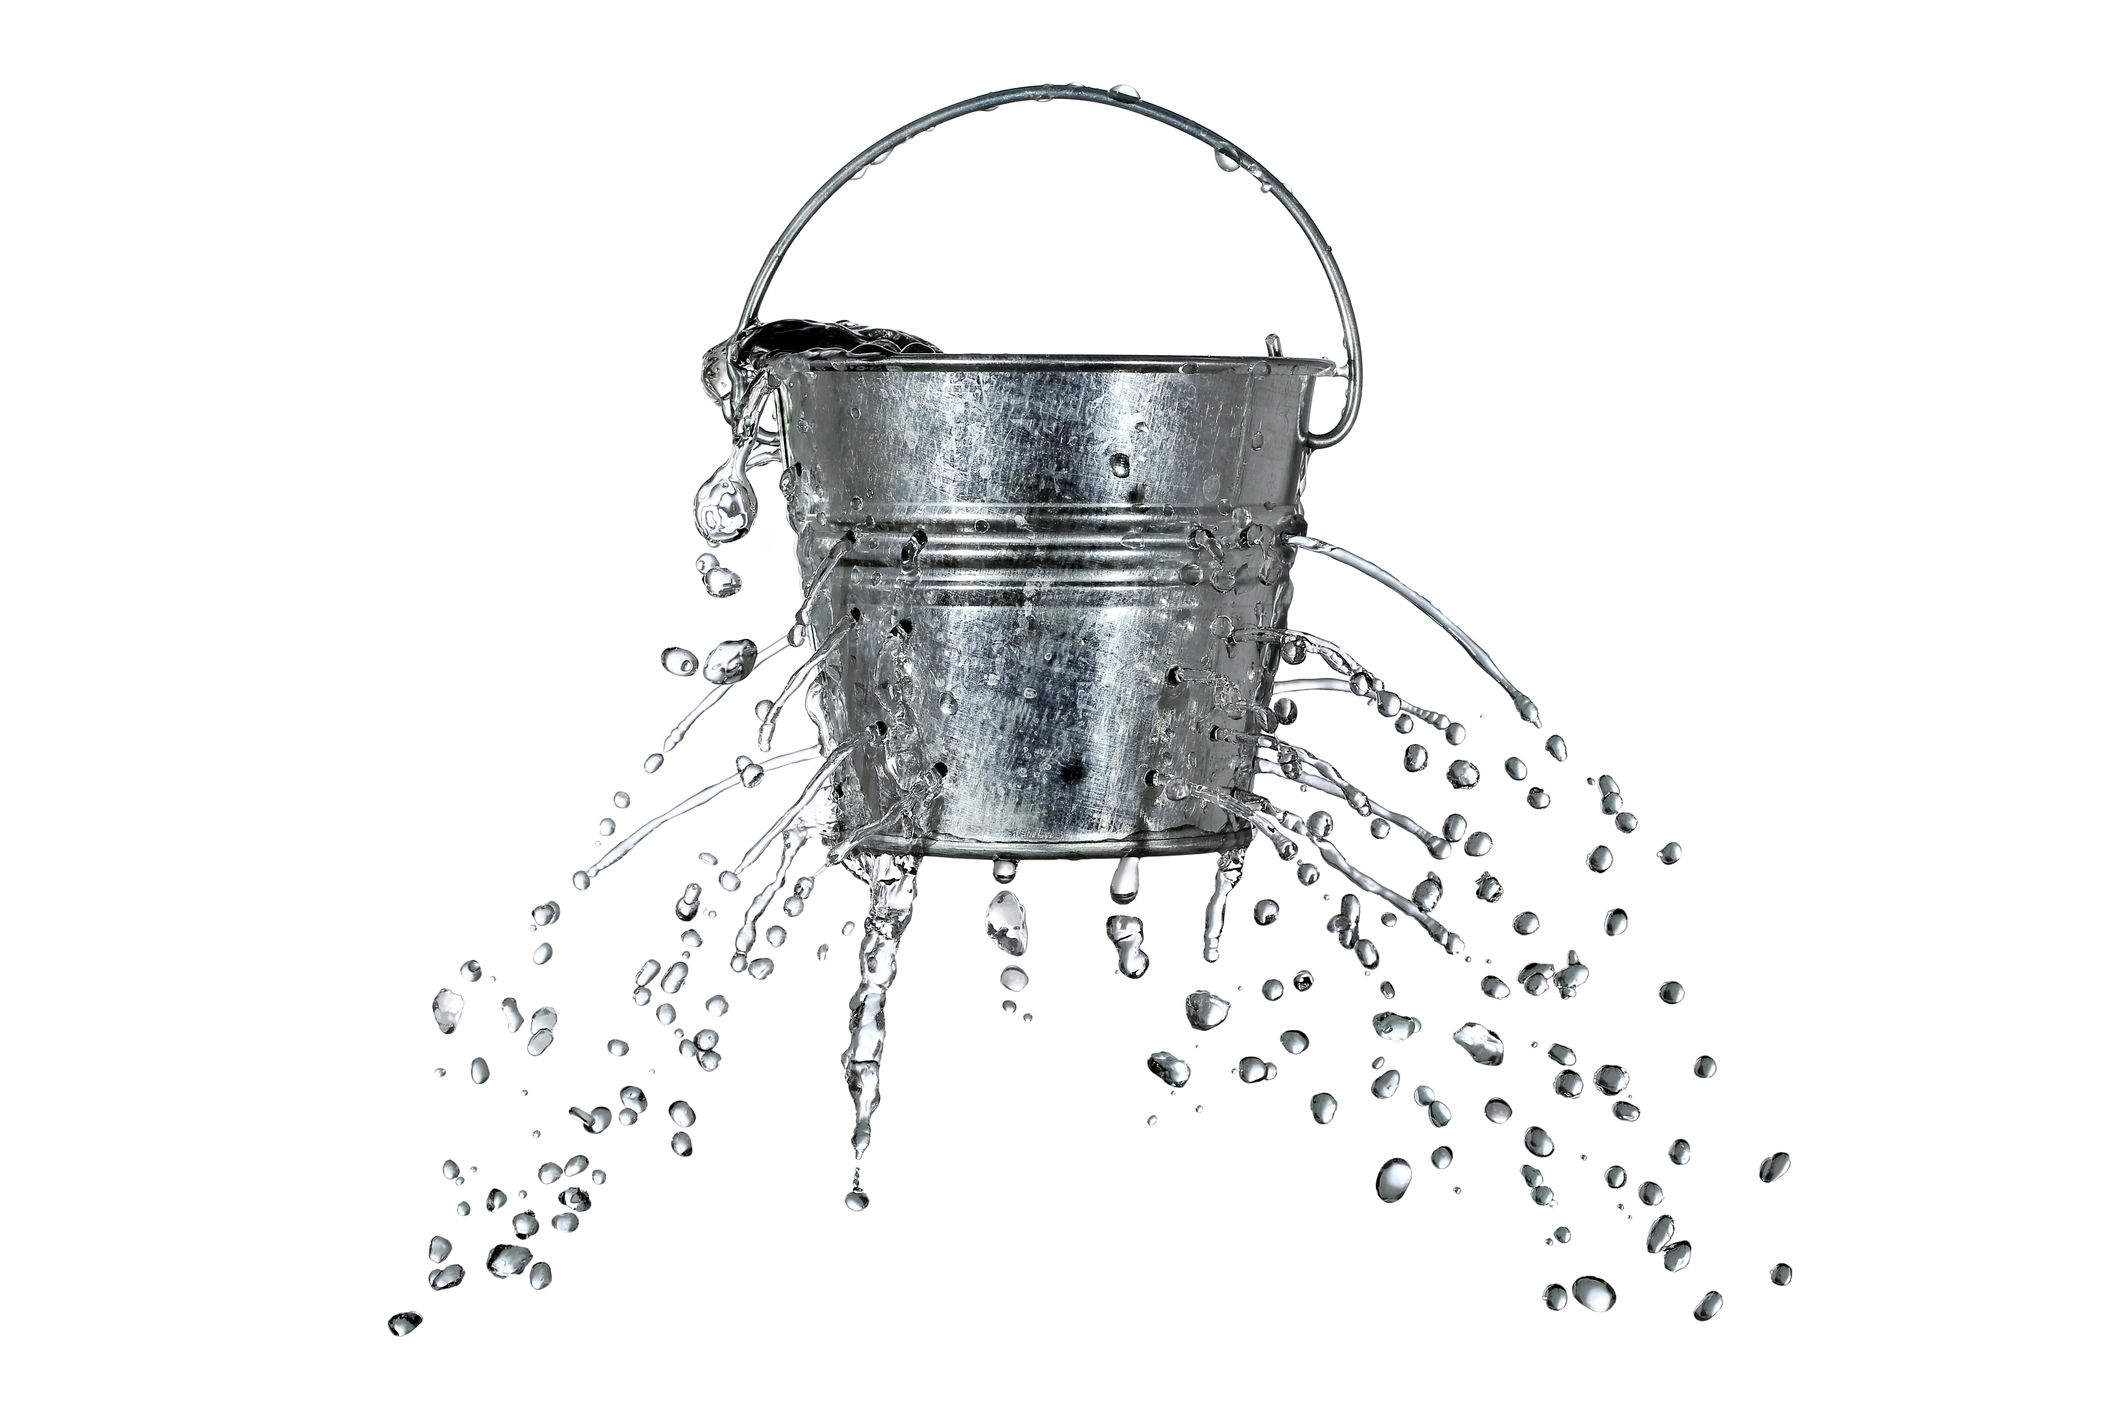 /how-to-eliminate-leaky-s3-buckets-without-writing-a-line-of-code-s9113u32 feature image